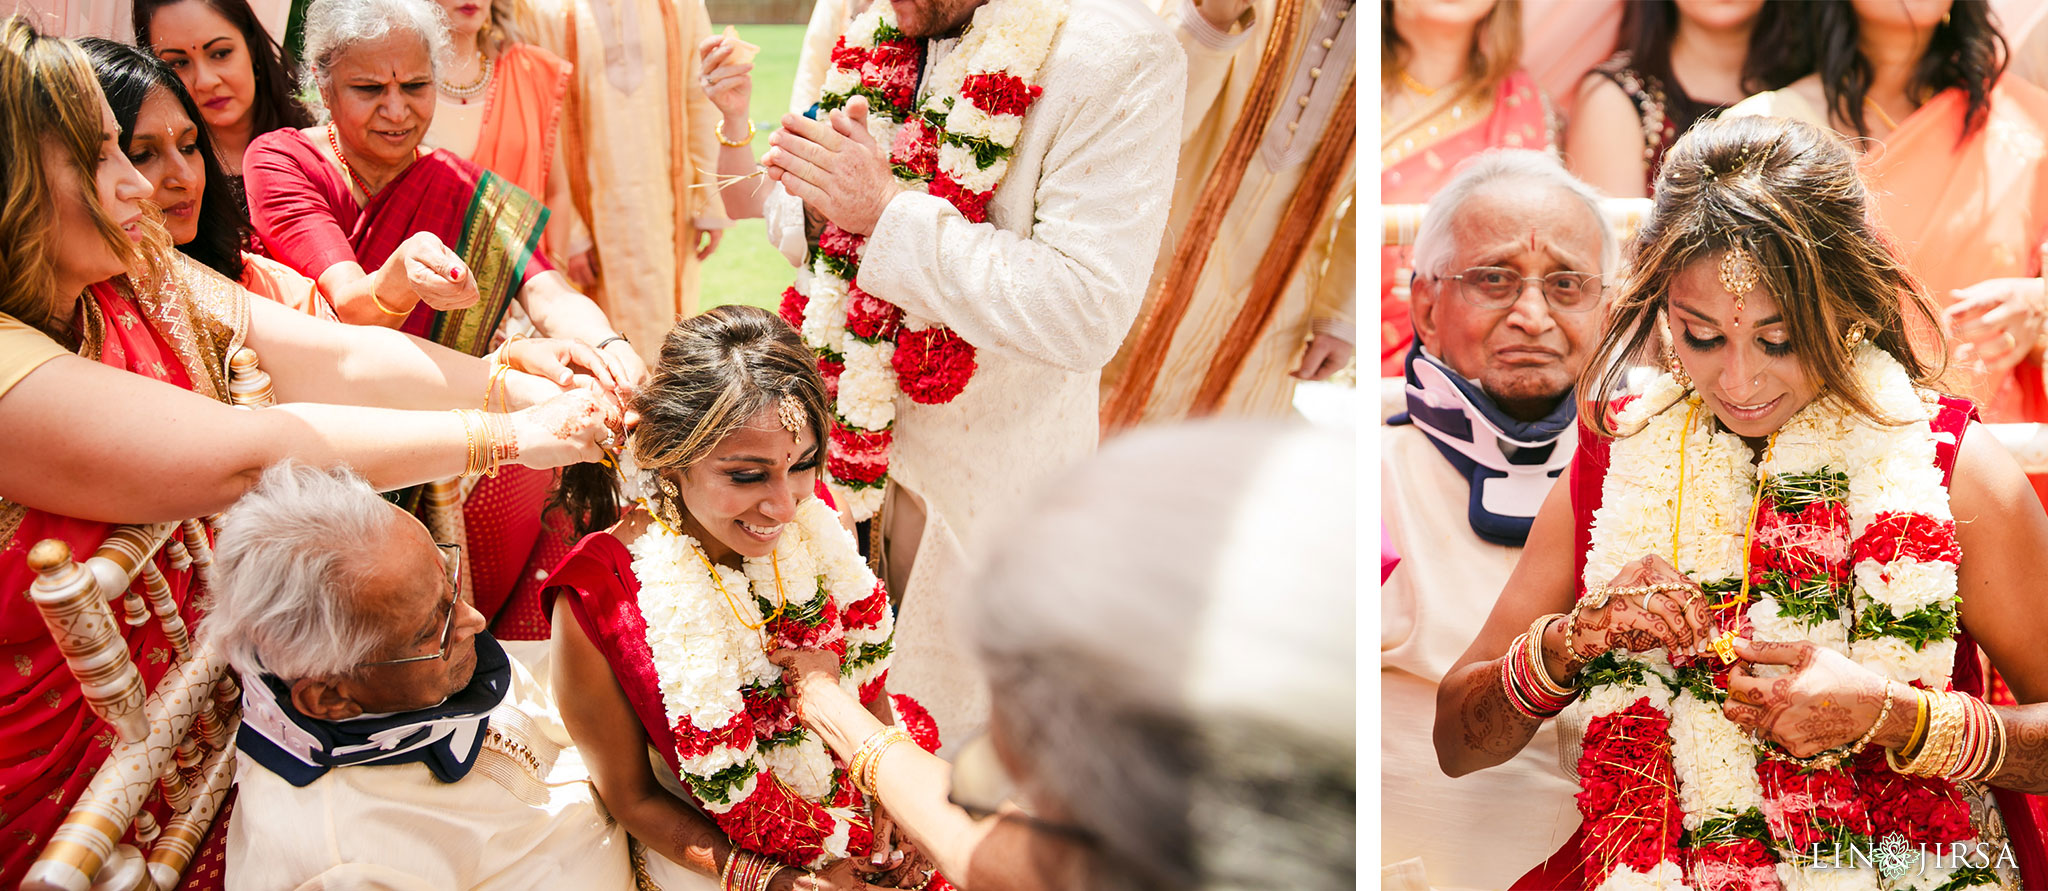 035 sherwood country club indian wedding ceremony photography